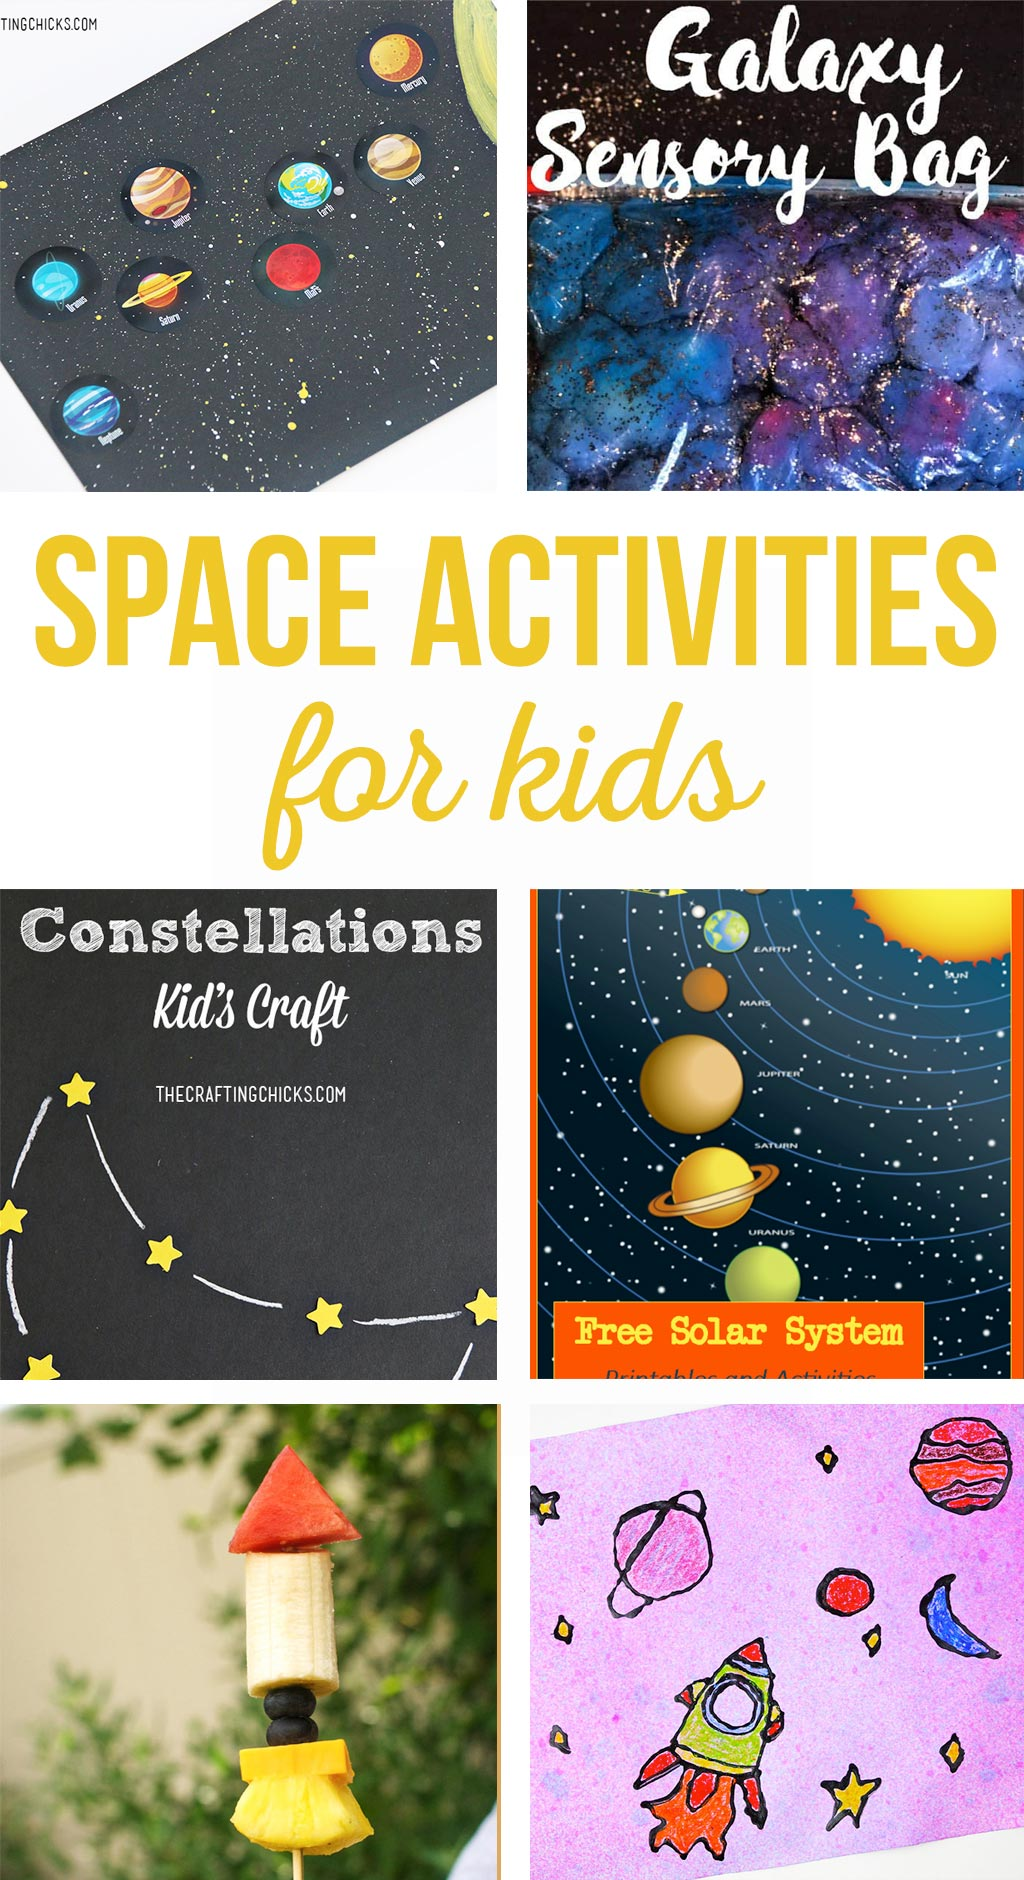 Space Activities for Kids | Crafts and activities involving space and the solar system.  Kids will love these simple, fun projects! #kidsactivities #kidscrafts #space #solarsystem